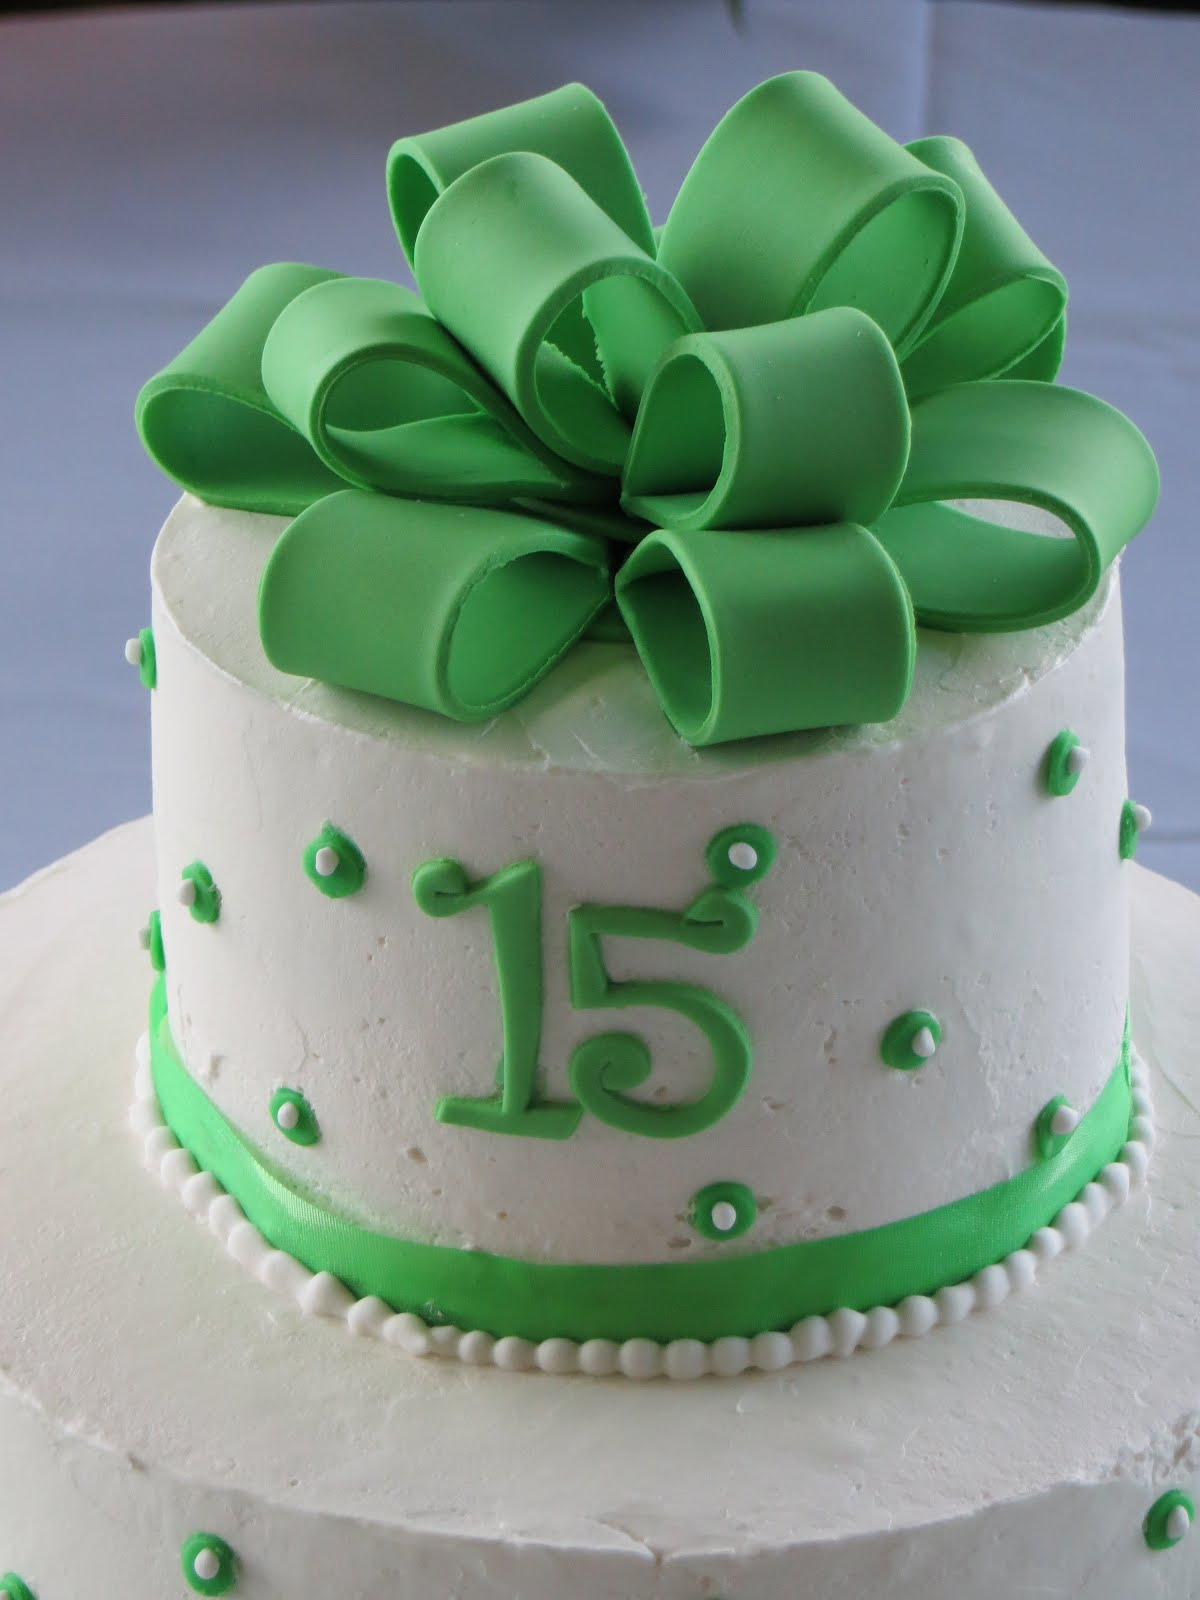 Cakes And More Quinceanera Cake Sweet 15 Cake Green